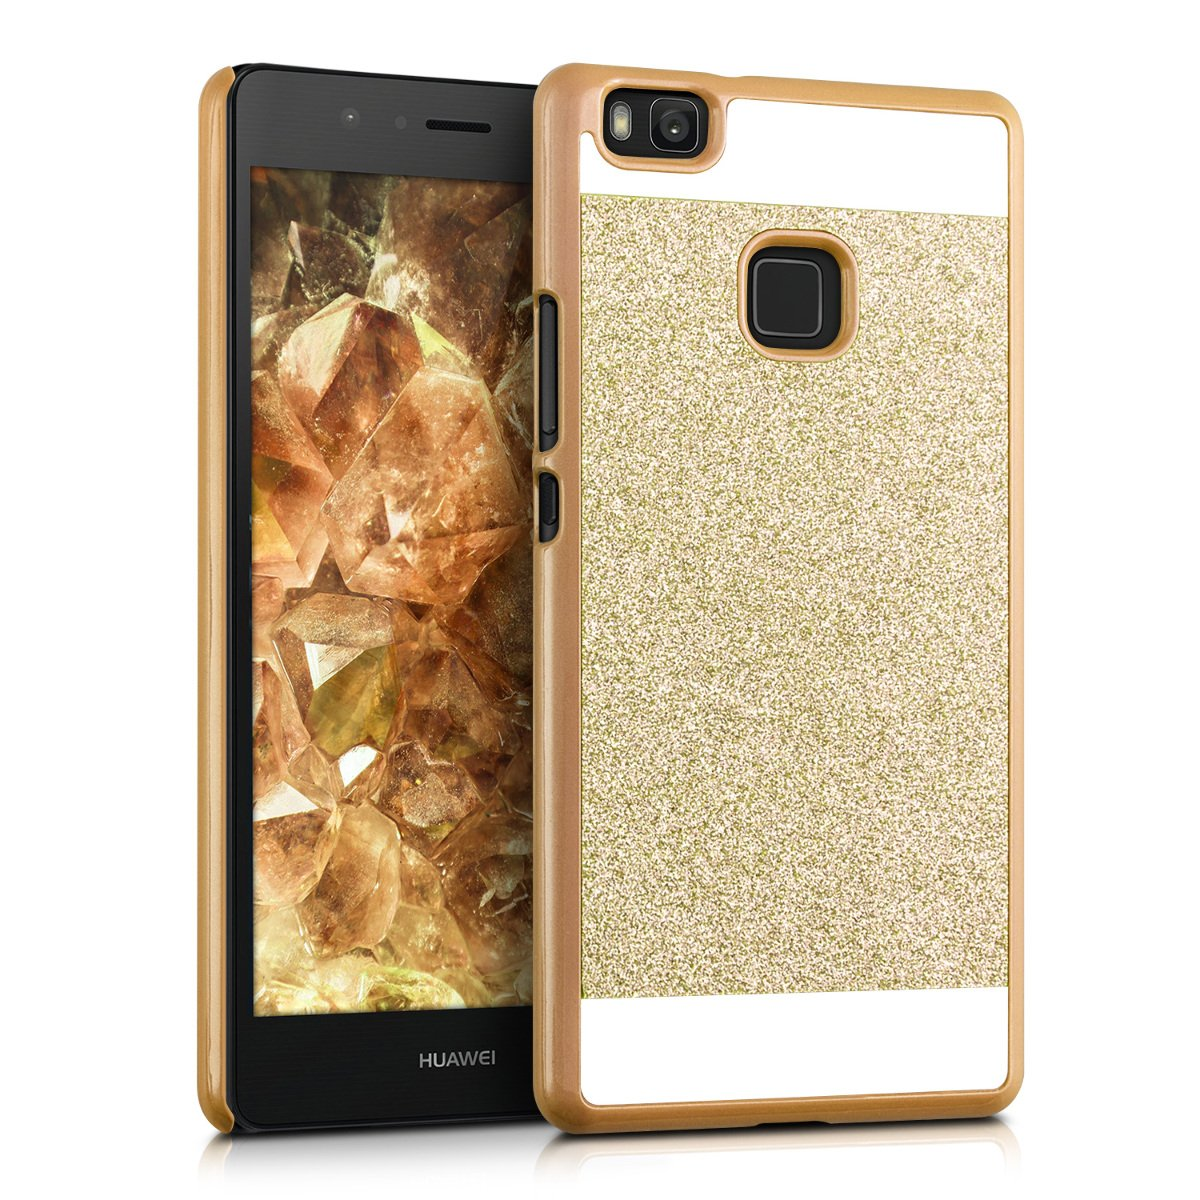 kwmobile Case for Huawei P9 Lite - Shockproof Protective Bling Glitter Sparkle Hard Back Cover - Gold/White